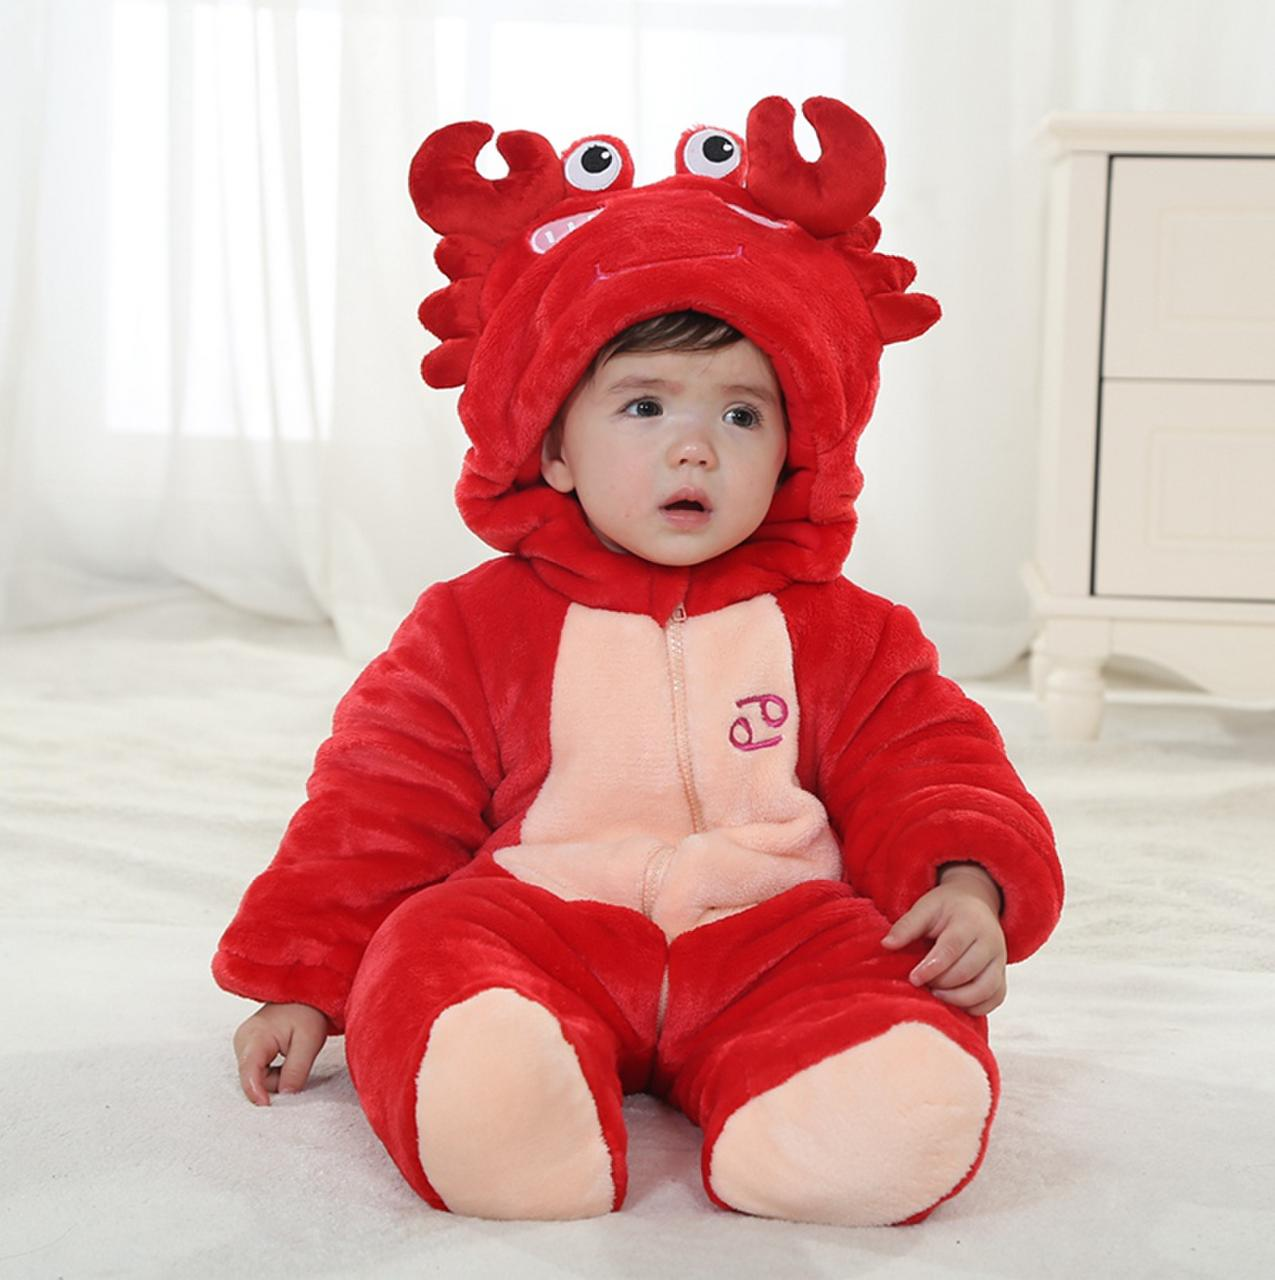 Find wholesale baby clothing online from China baby clothing wholesalers and dropshippers. DHgate helps you get high quality discount baby clothing at bulk prices. evildownloadersuper74k.ga provides baby clothing items from China top selected Clothing Sets, Baby & Kids Clothing, Baby, Kids & Maternity suppliers at wholesale prices with worldwide delivery.